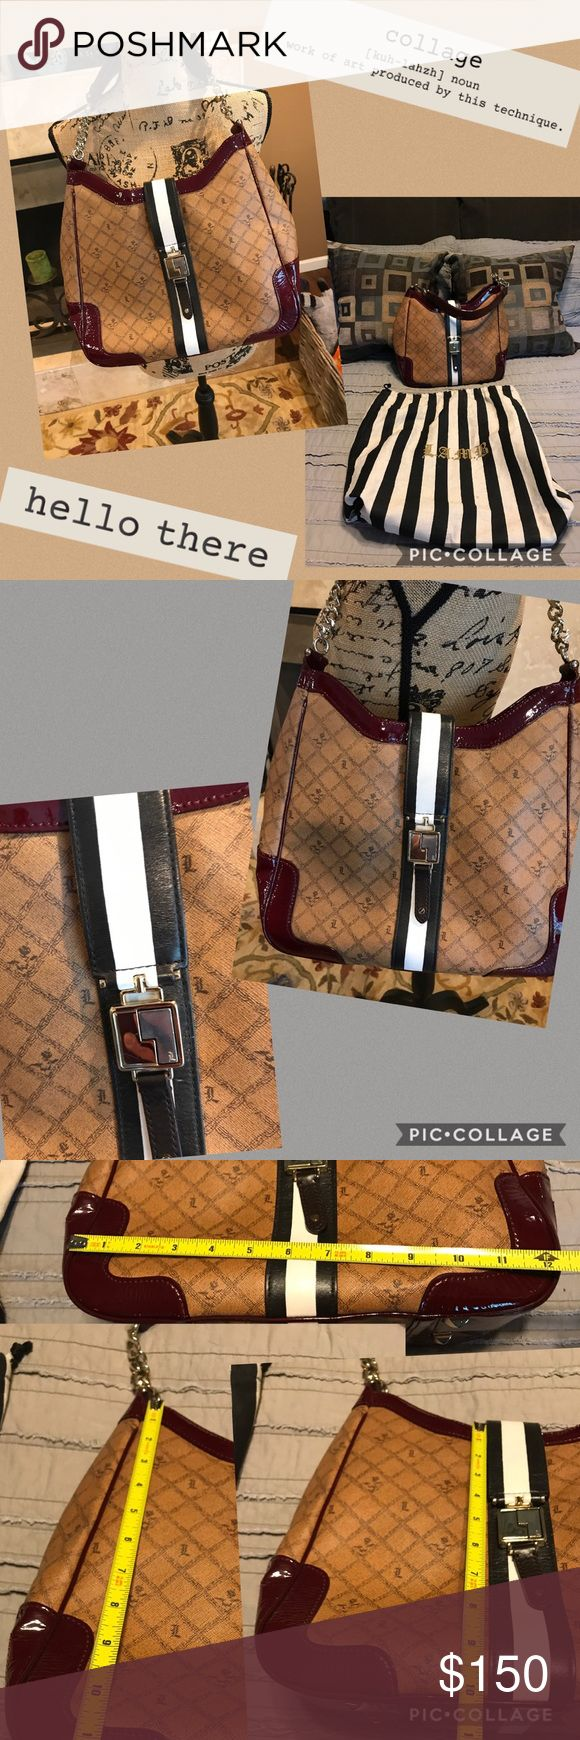 LAMB handbag LAMB handbag. Measurements In pics. This is about as close to new condition as you can get. Used it once, for an Event. Dust bag included. Colors are pretty accurate in pics... tried to offer lots of details. Ask questions! No lowballing please and thank you. Reasonable offers always welcomed! L.A.M.B. Bags